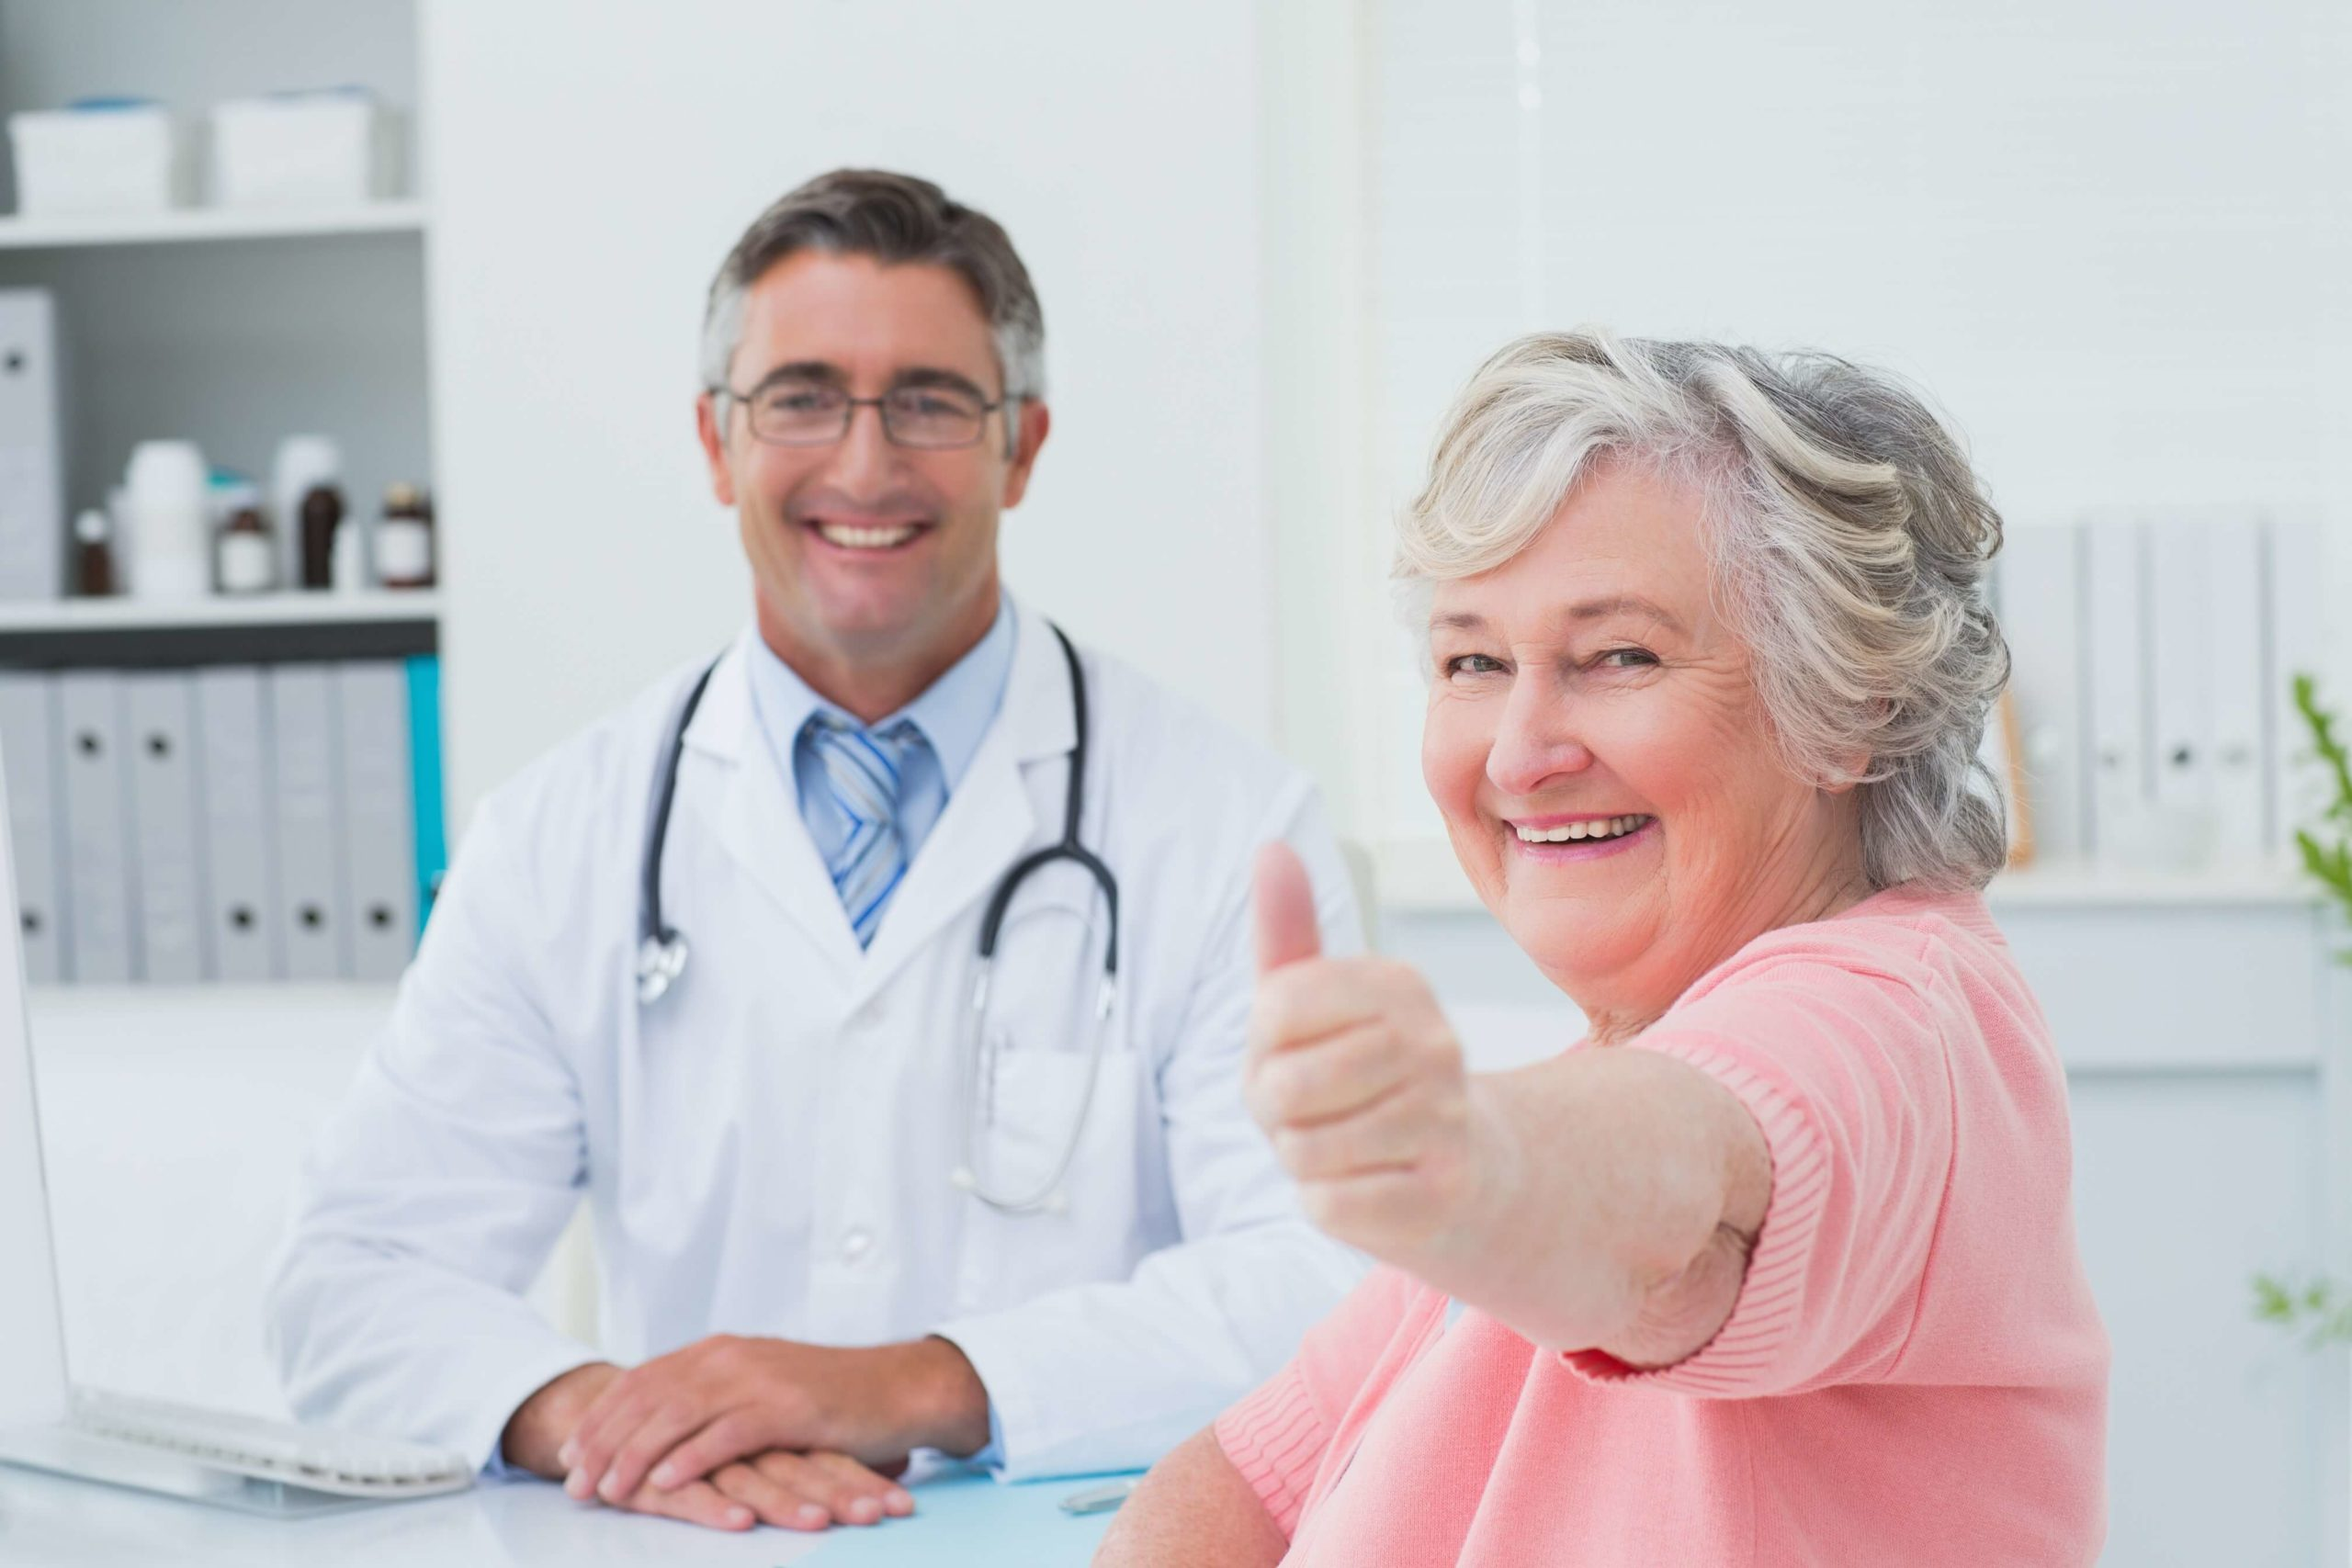 Woman excited for value based care physician performance.